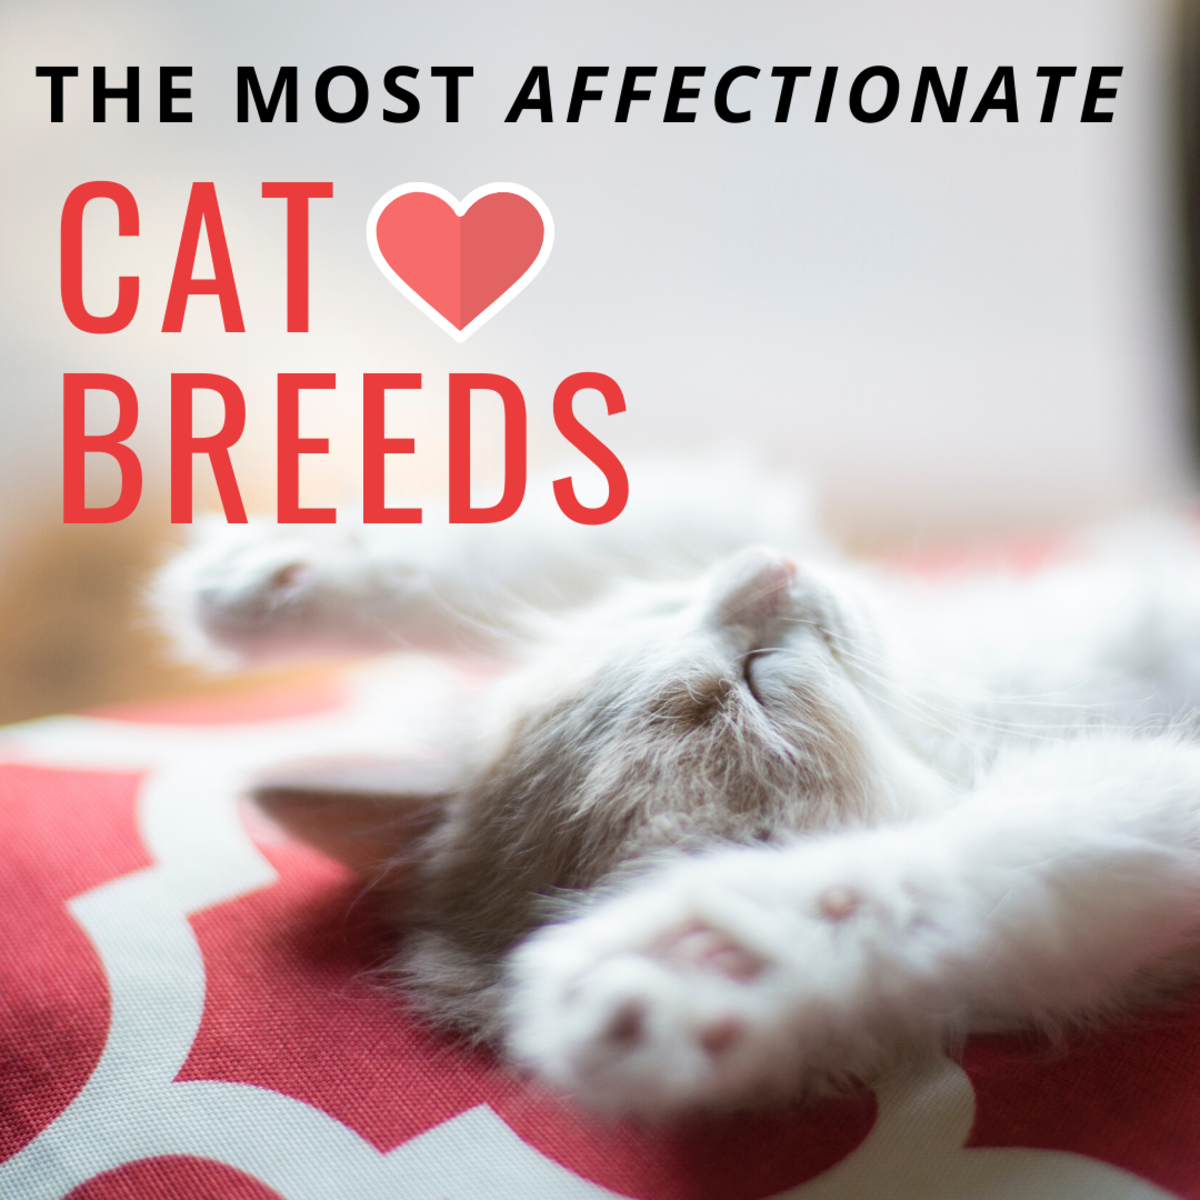 The Top 10 Most Affectionate Cat Breeds That Love to Cuddle